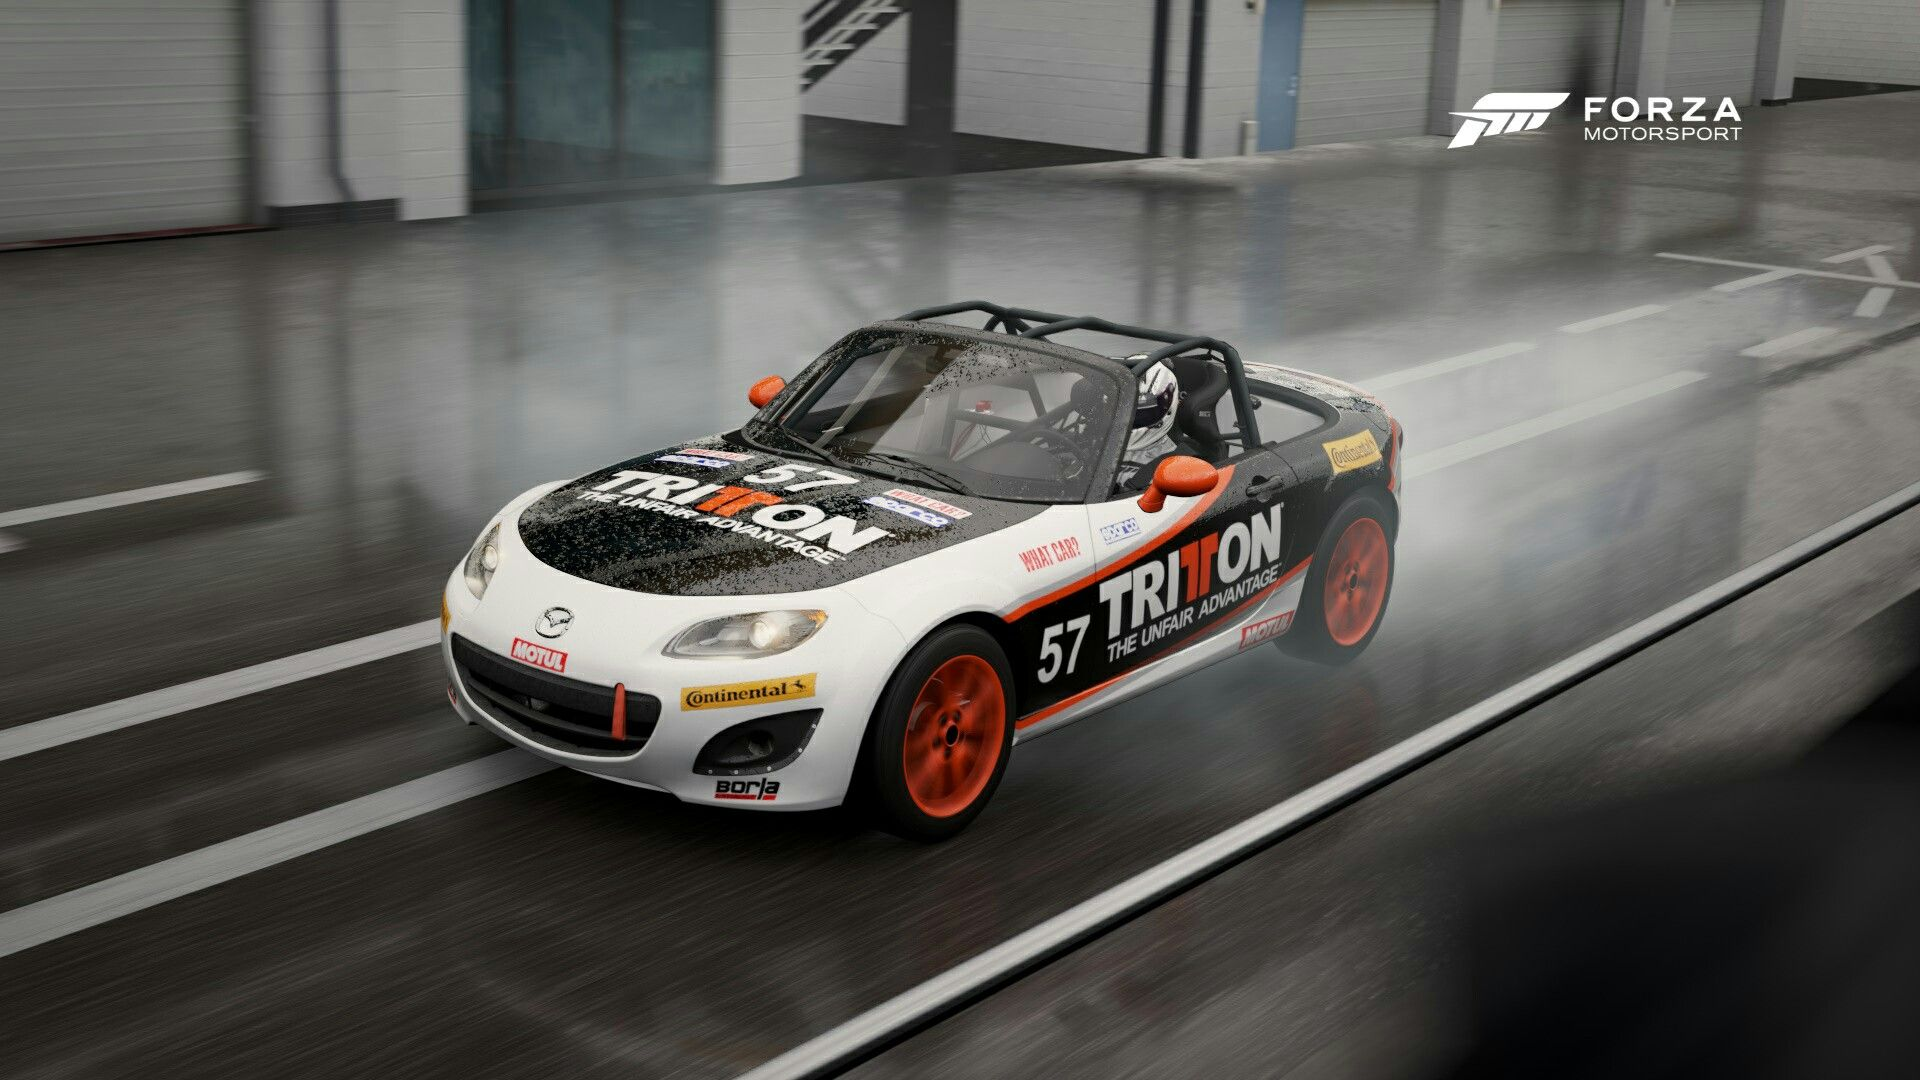 58 Tritton 2013 Mazda Mx 5 Cup Livery Available In Forza